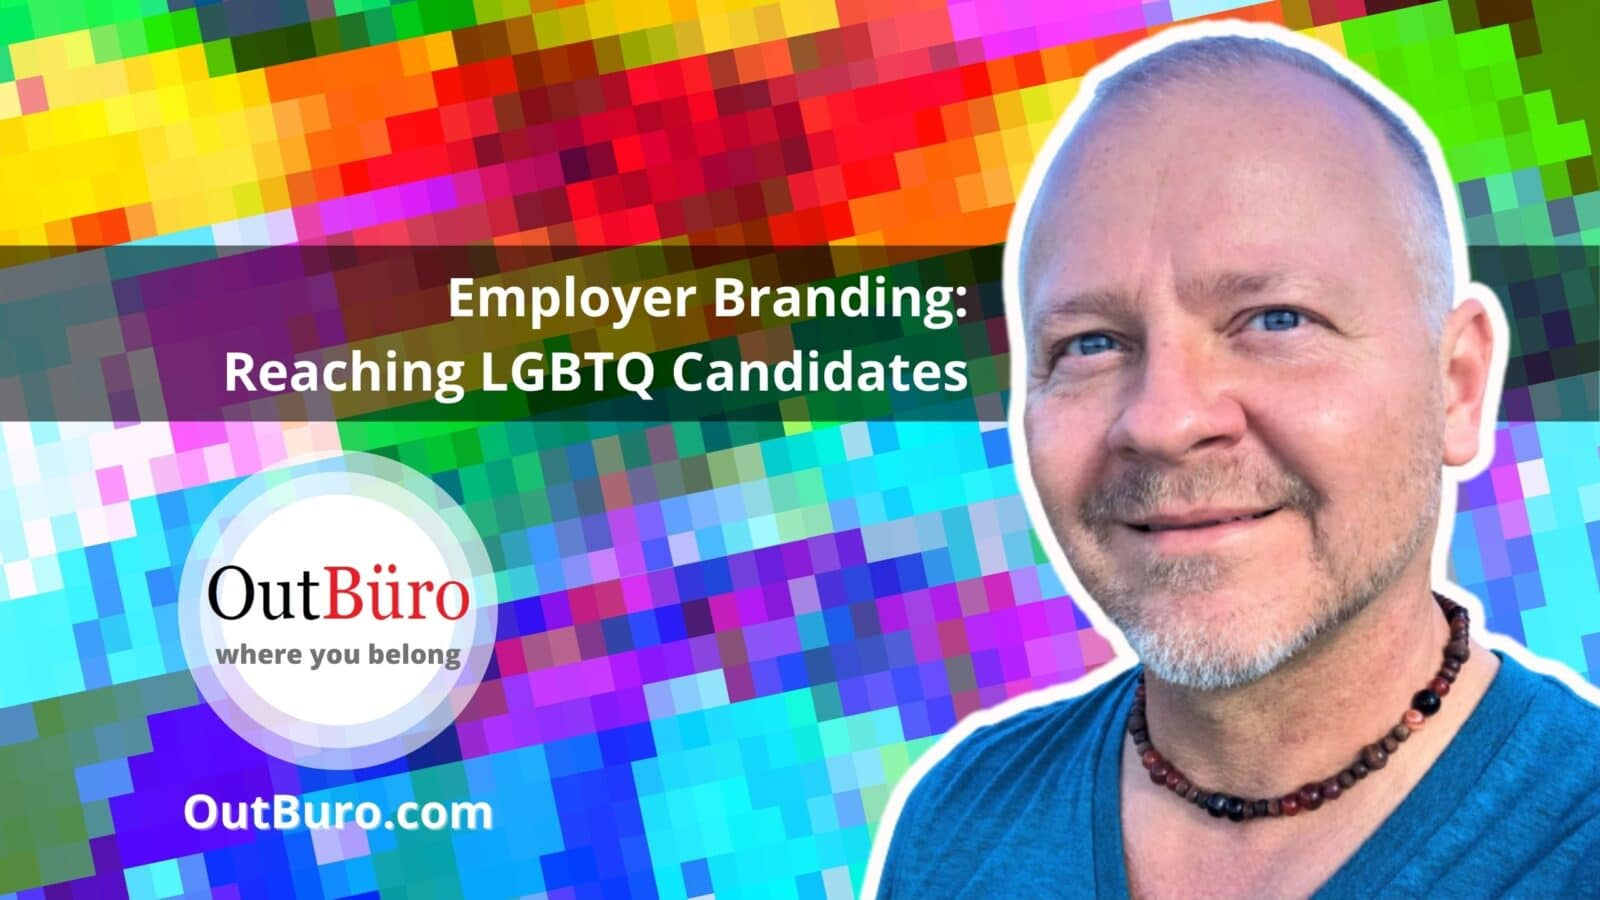 Dennis Velco Employer Brandin Reaching LGBTQ candidates lgbt professionals gay lesbian queer community (1)